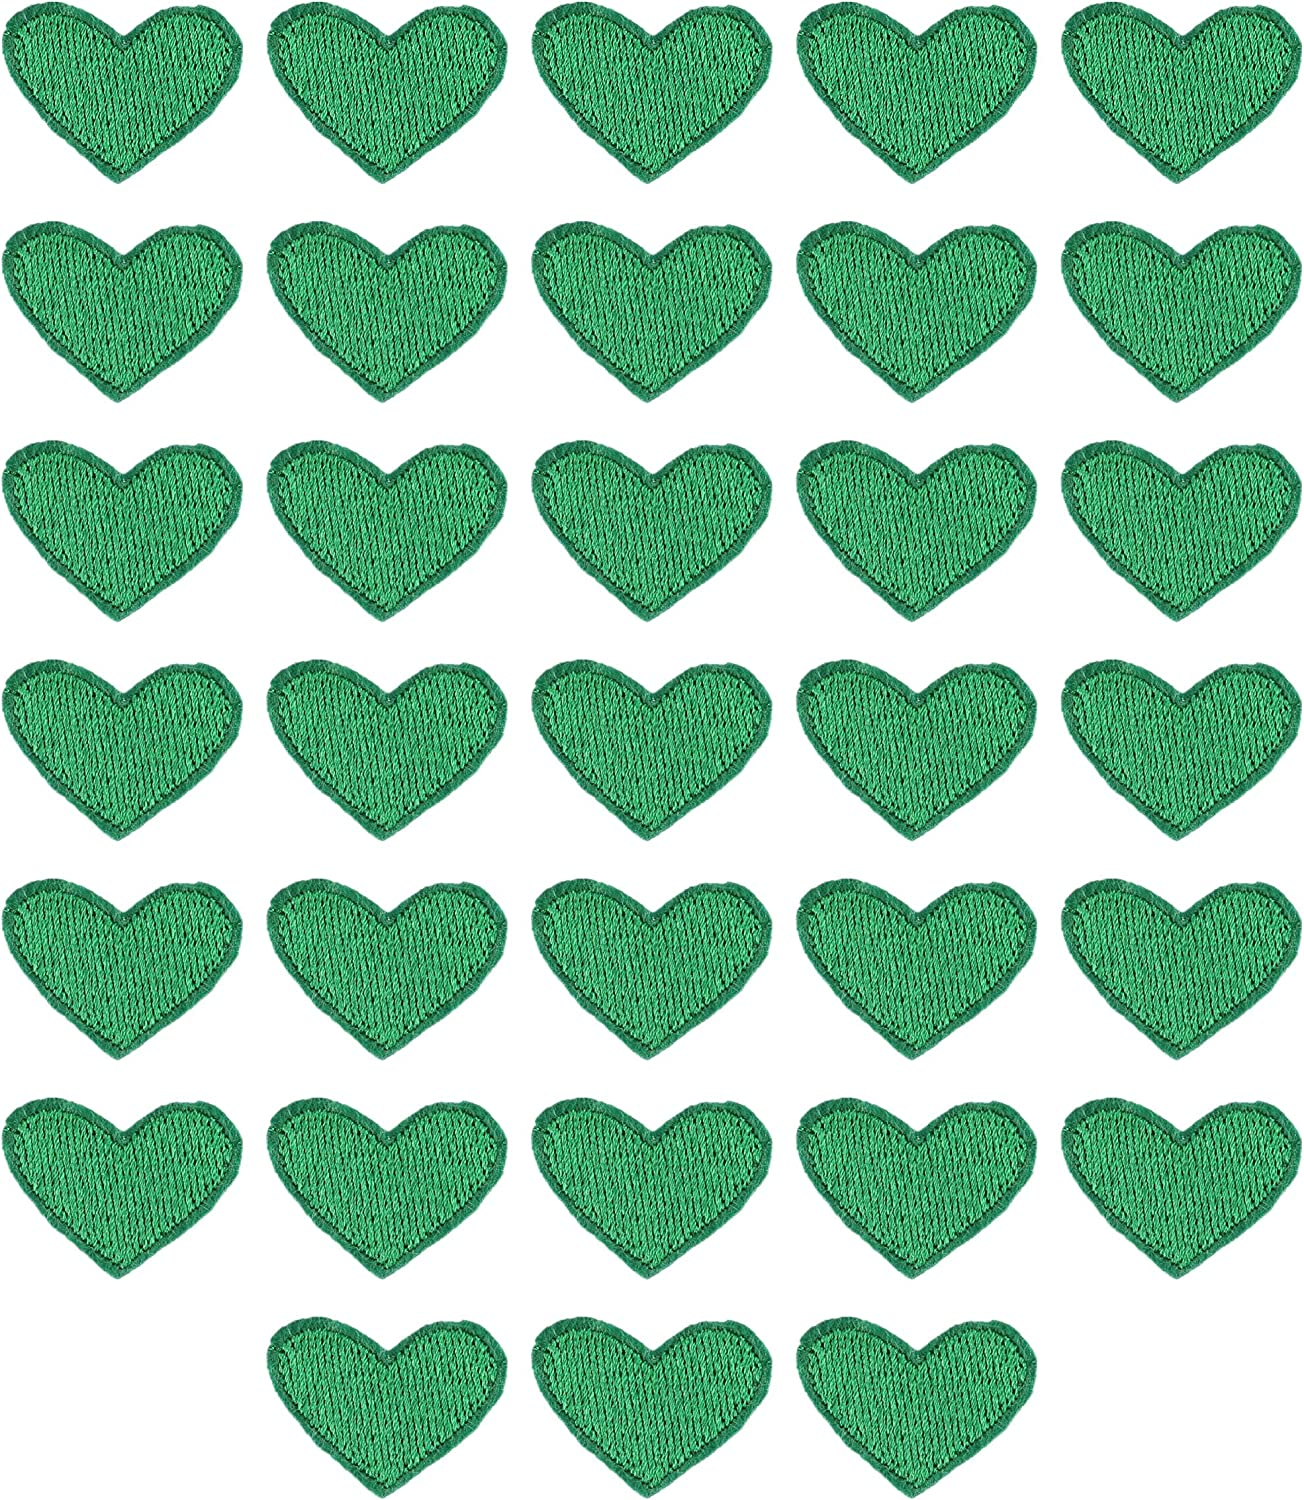 MSCFTFB 33 Pieces Small Heart Iron Mail order cheap Embroidered Sew Cheap mail order shopping Patches Pa on